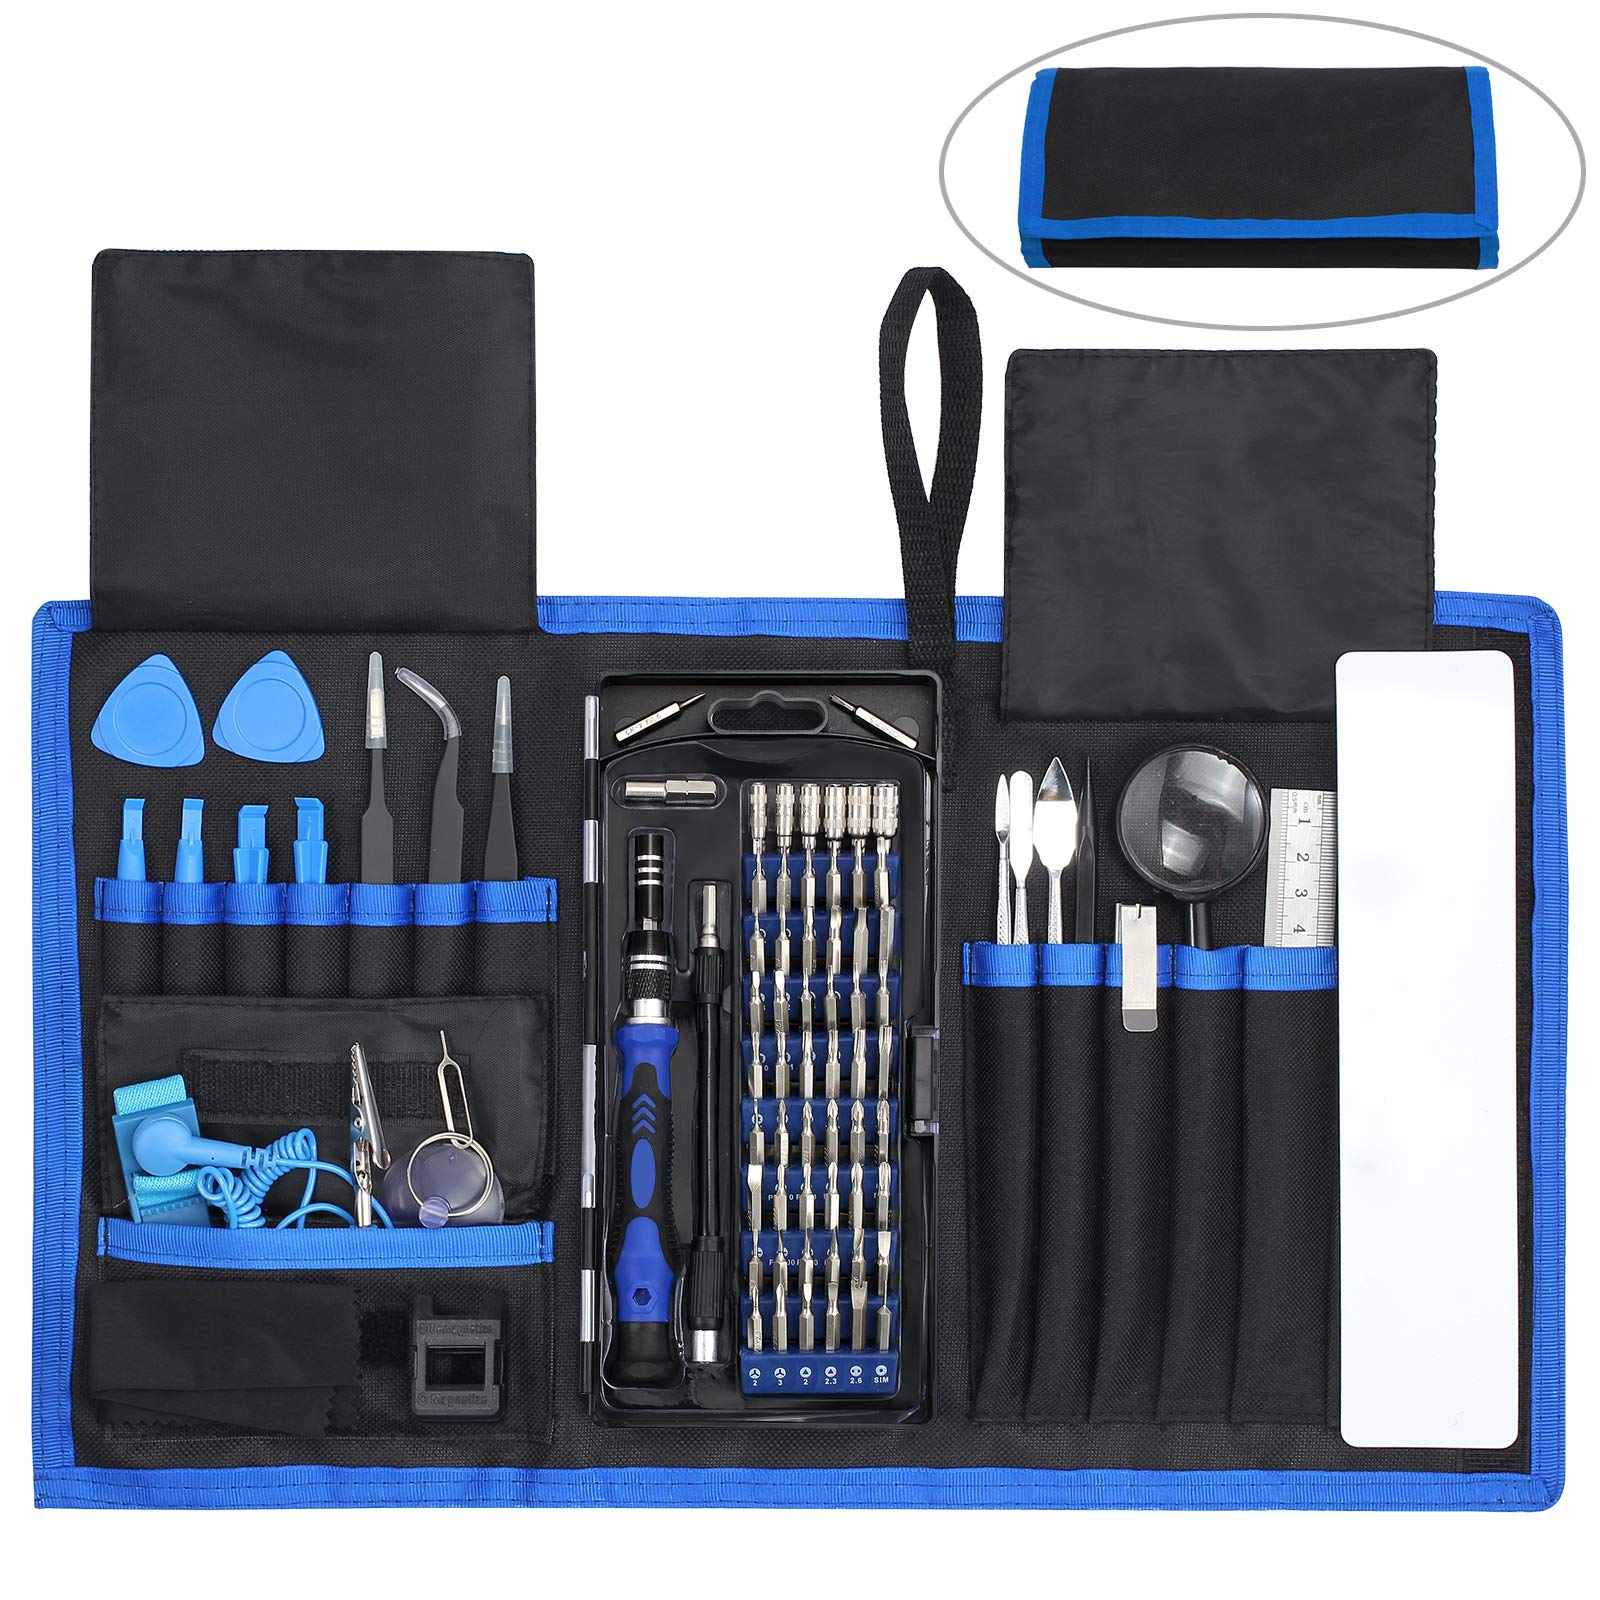 Justech Precision Screwdriver Set 82 in 1 Magnetic Driver Kit Professional Mini Portable Repair Tool Kit with 56 Bits for Repair Cell Phone iPhone iPad Laptop Smartphones MacBook-Blue